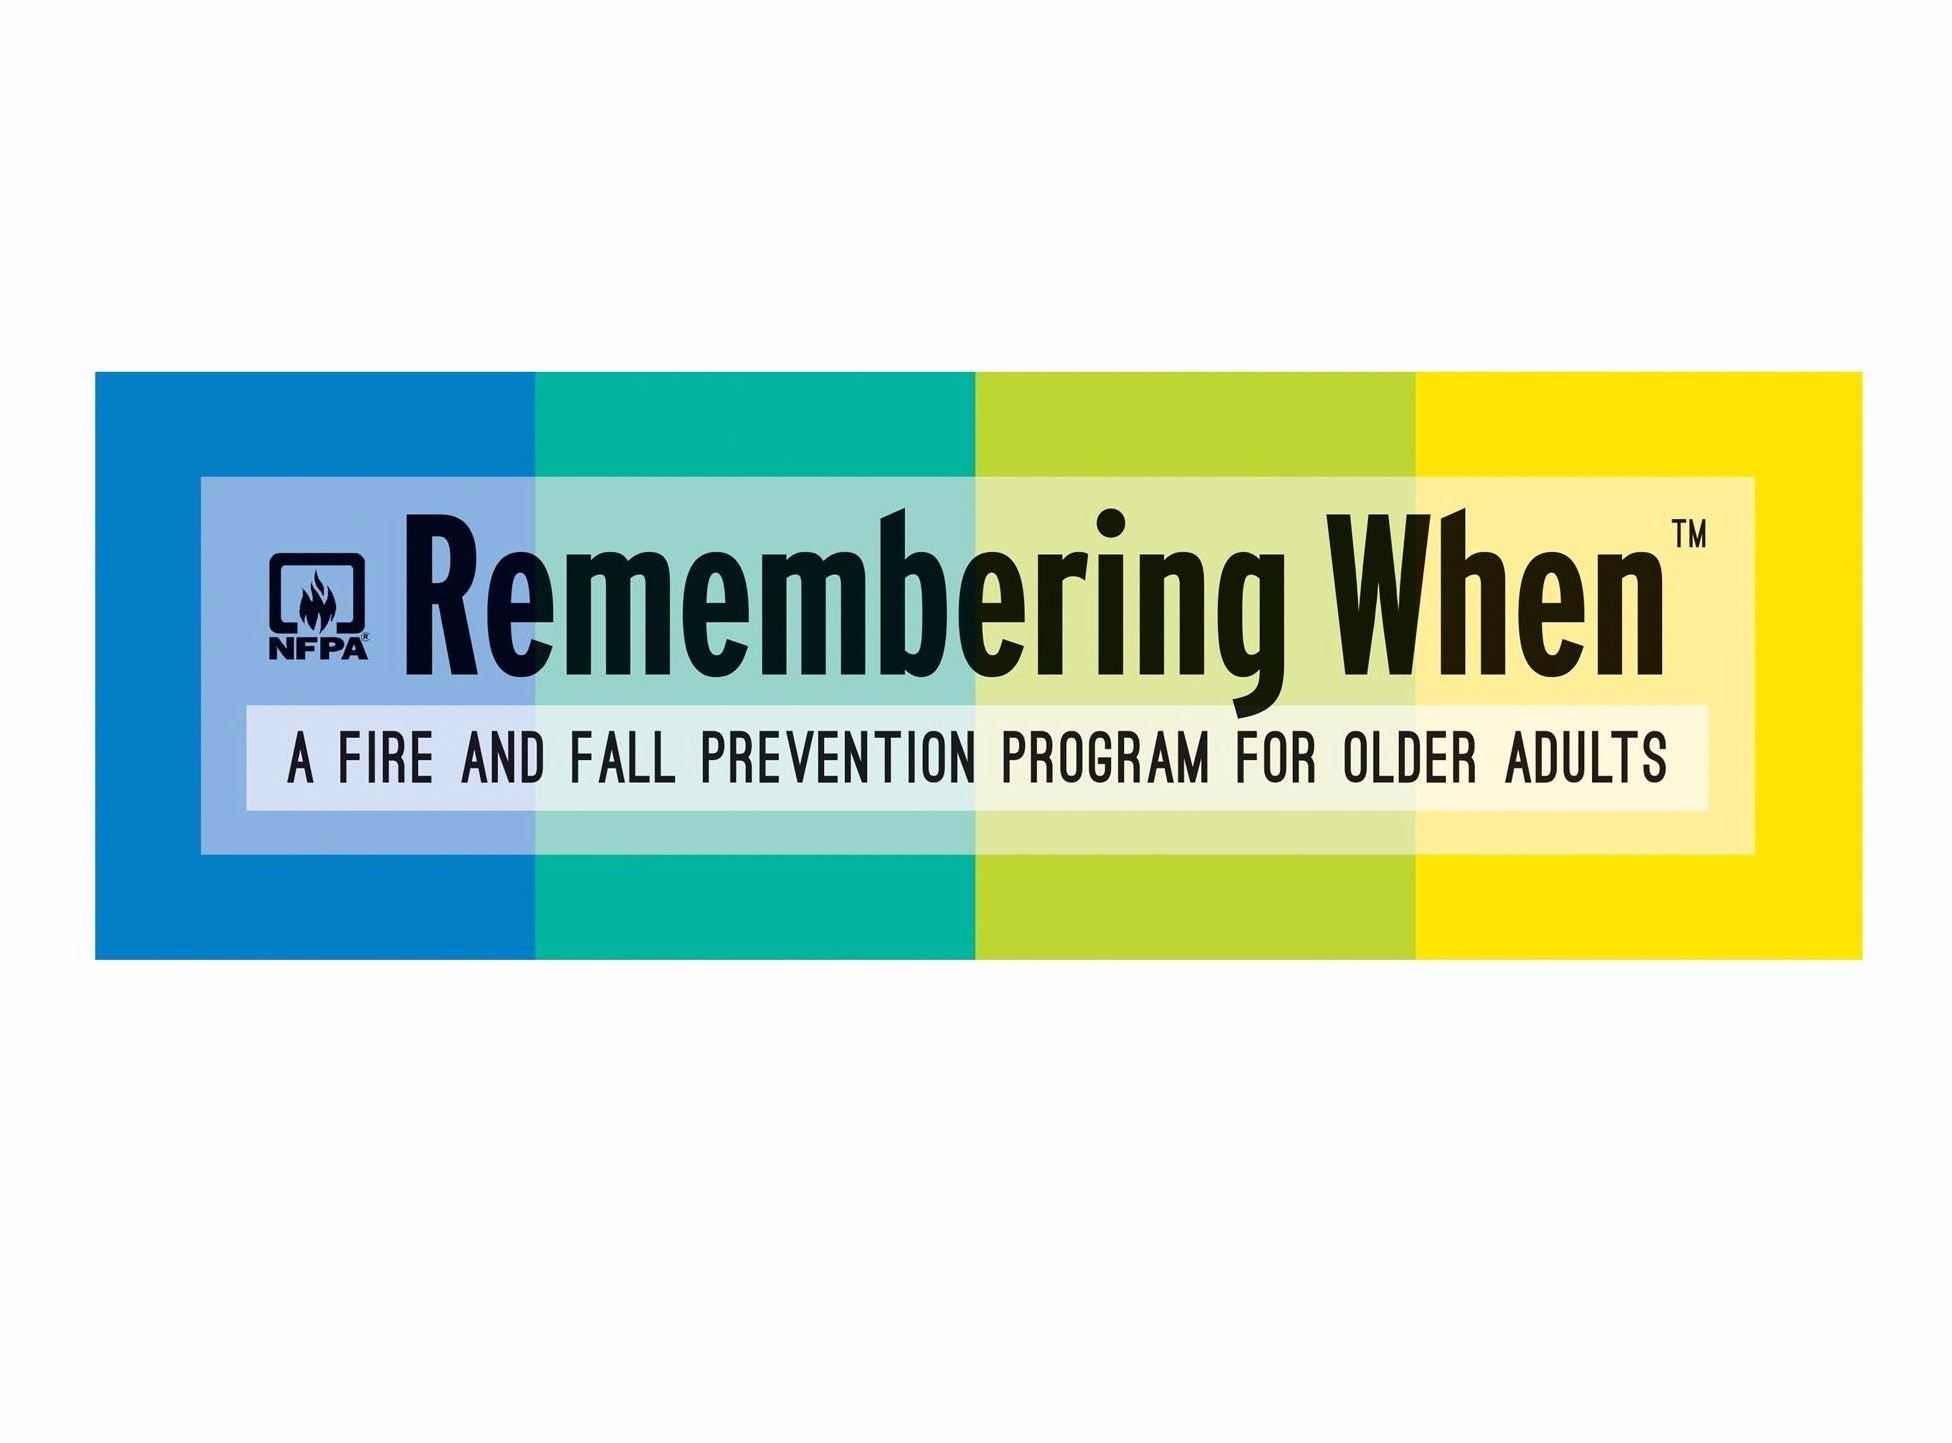 Remembering When - A Fire and Fall Prevention Program for Older Adults